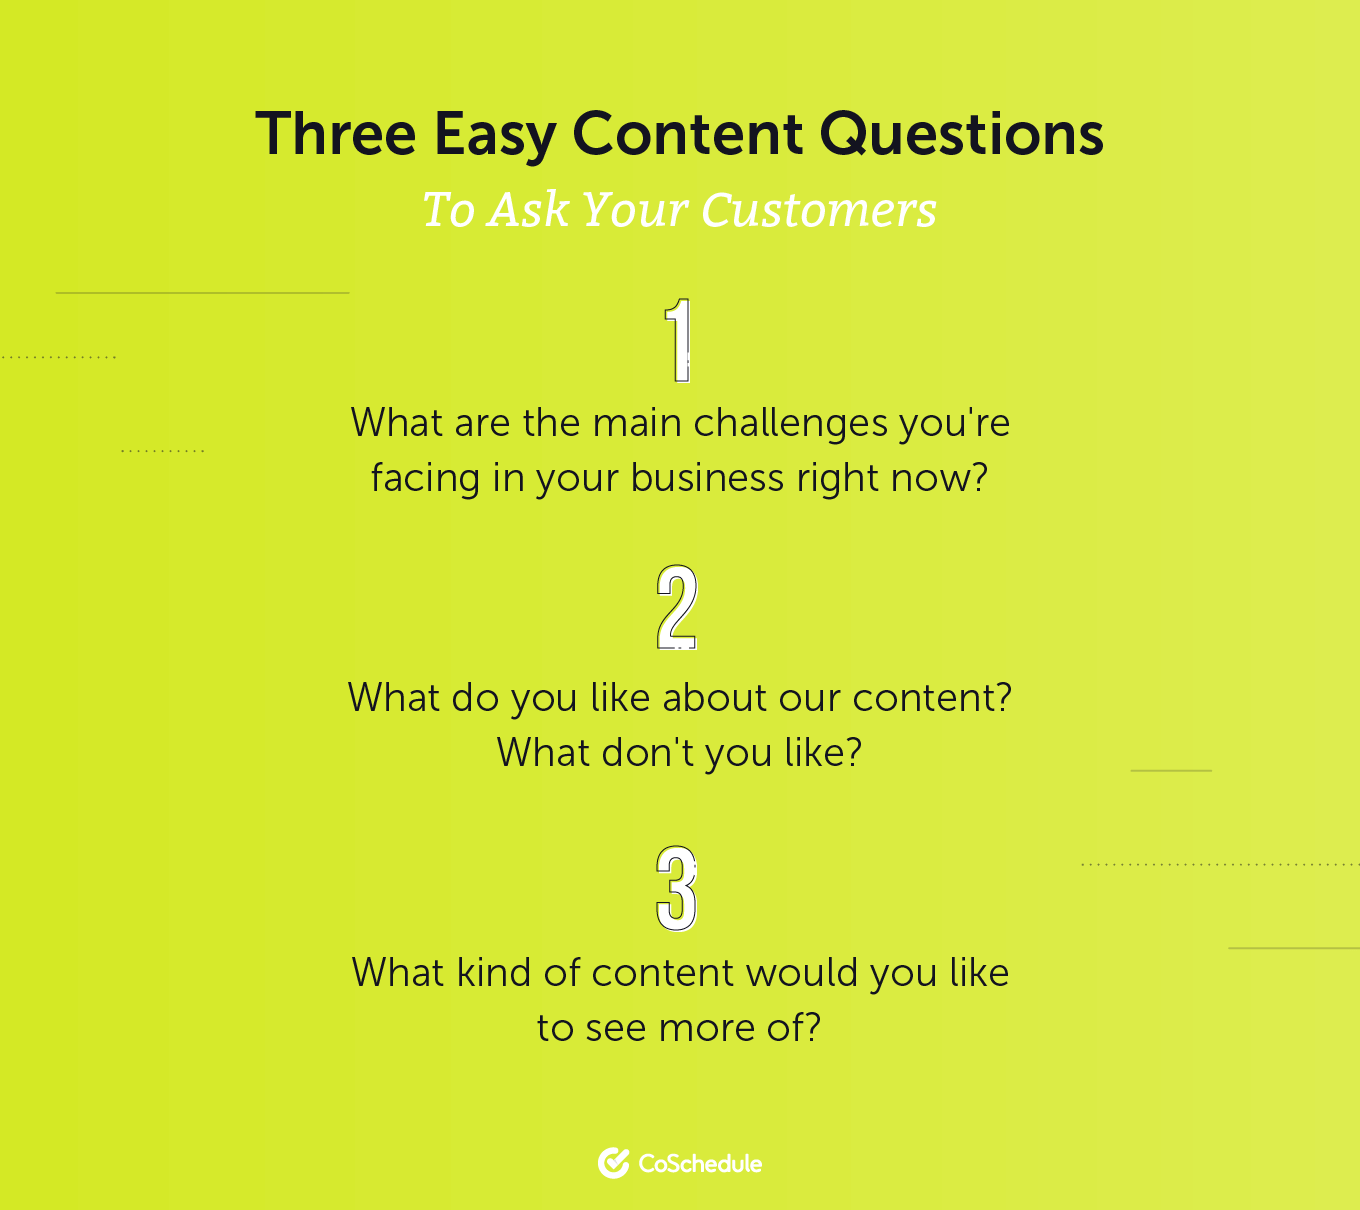 Three Easy Content Questions to Ask Your Customers